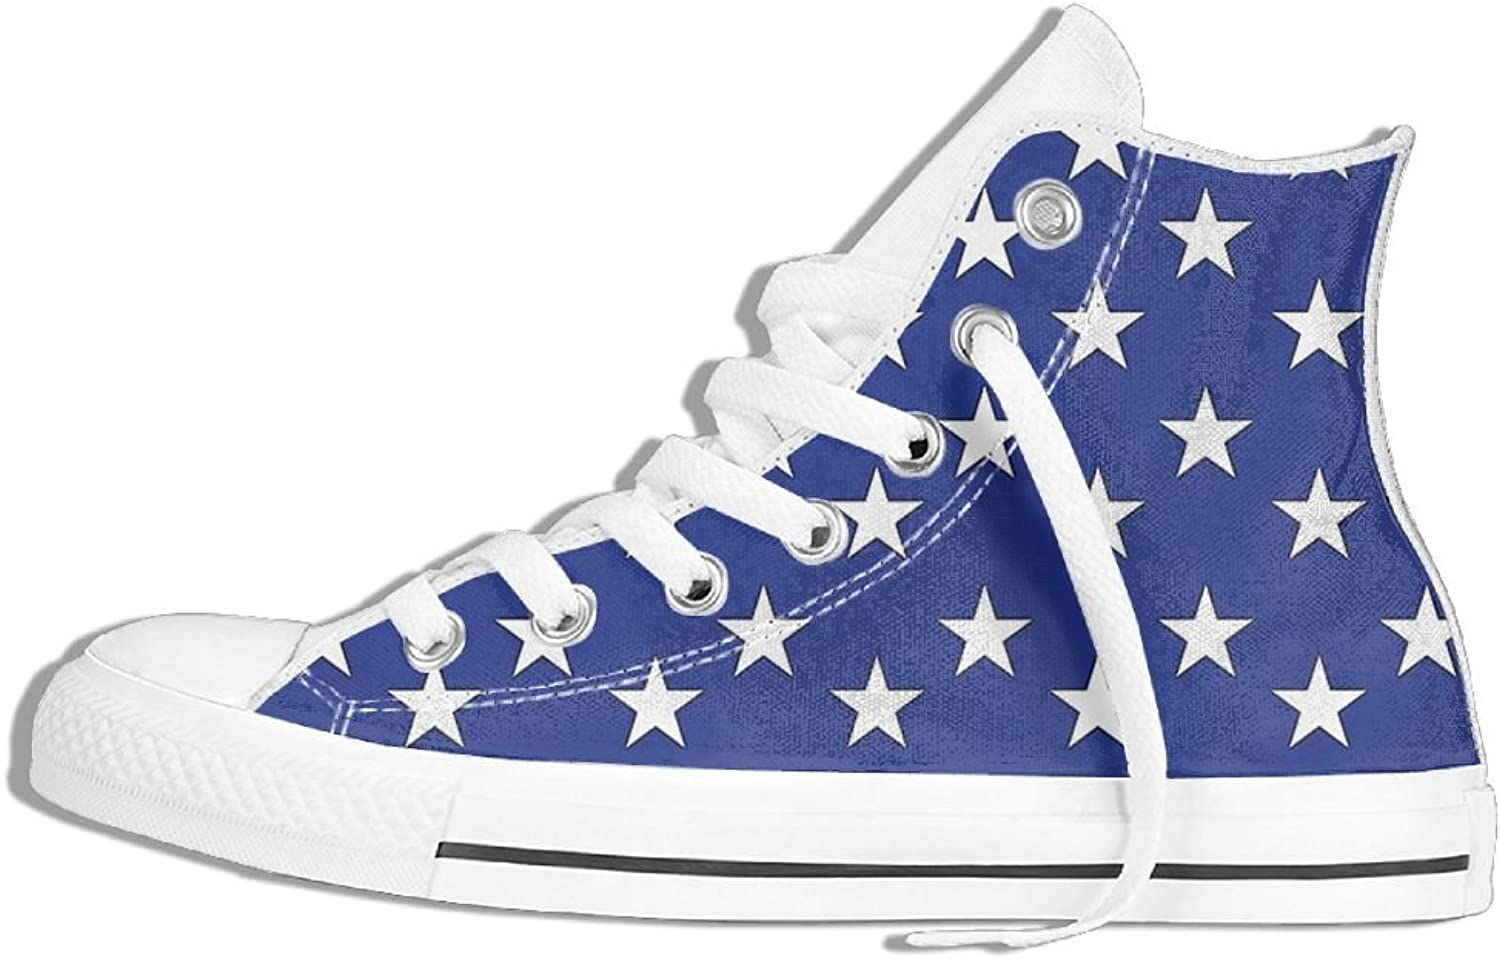 Unisex High Top Sneakers US FLAG 50stars Classic Canvas shoes Breathable Sneaker